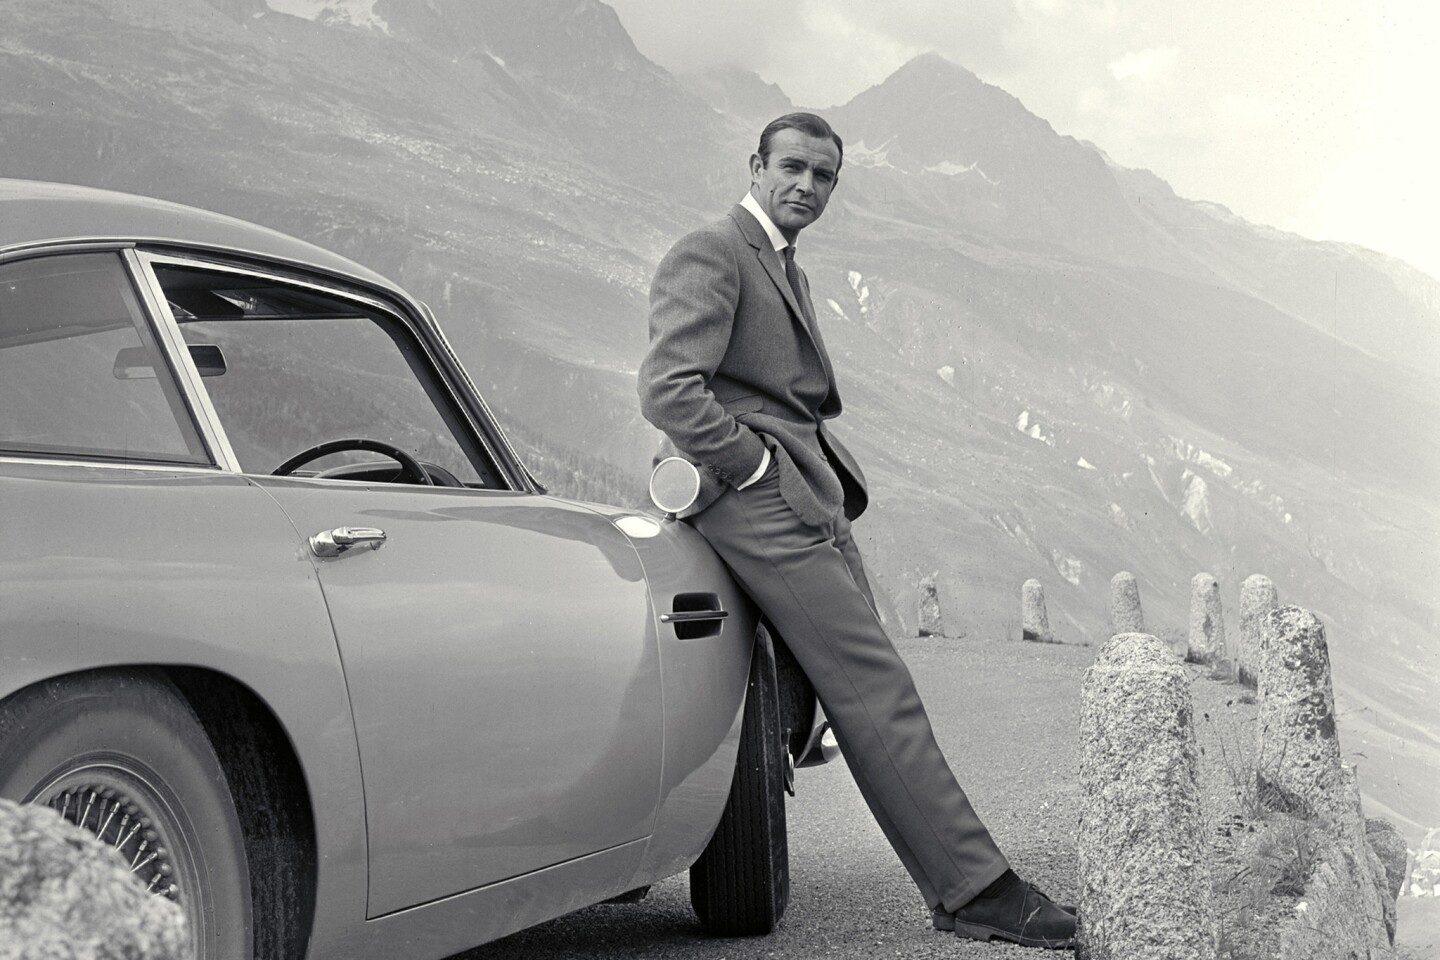 Sean Connery poses with his signature Aston Martin in the 1964 movie Goldfinger.